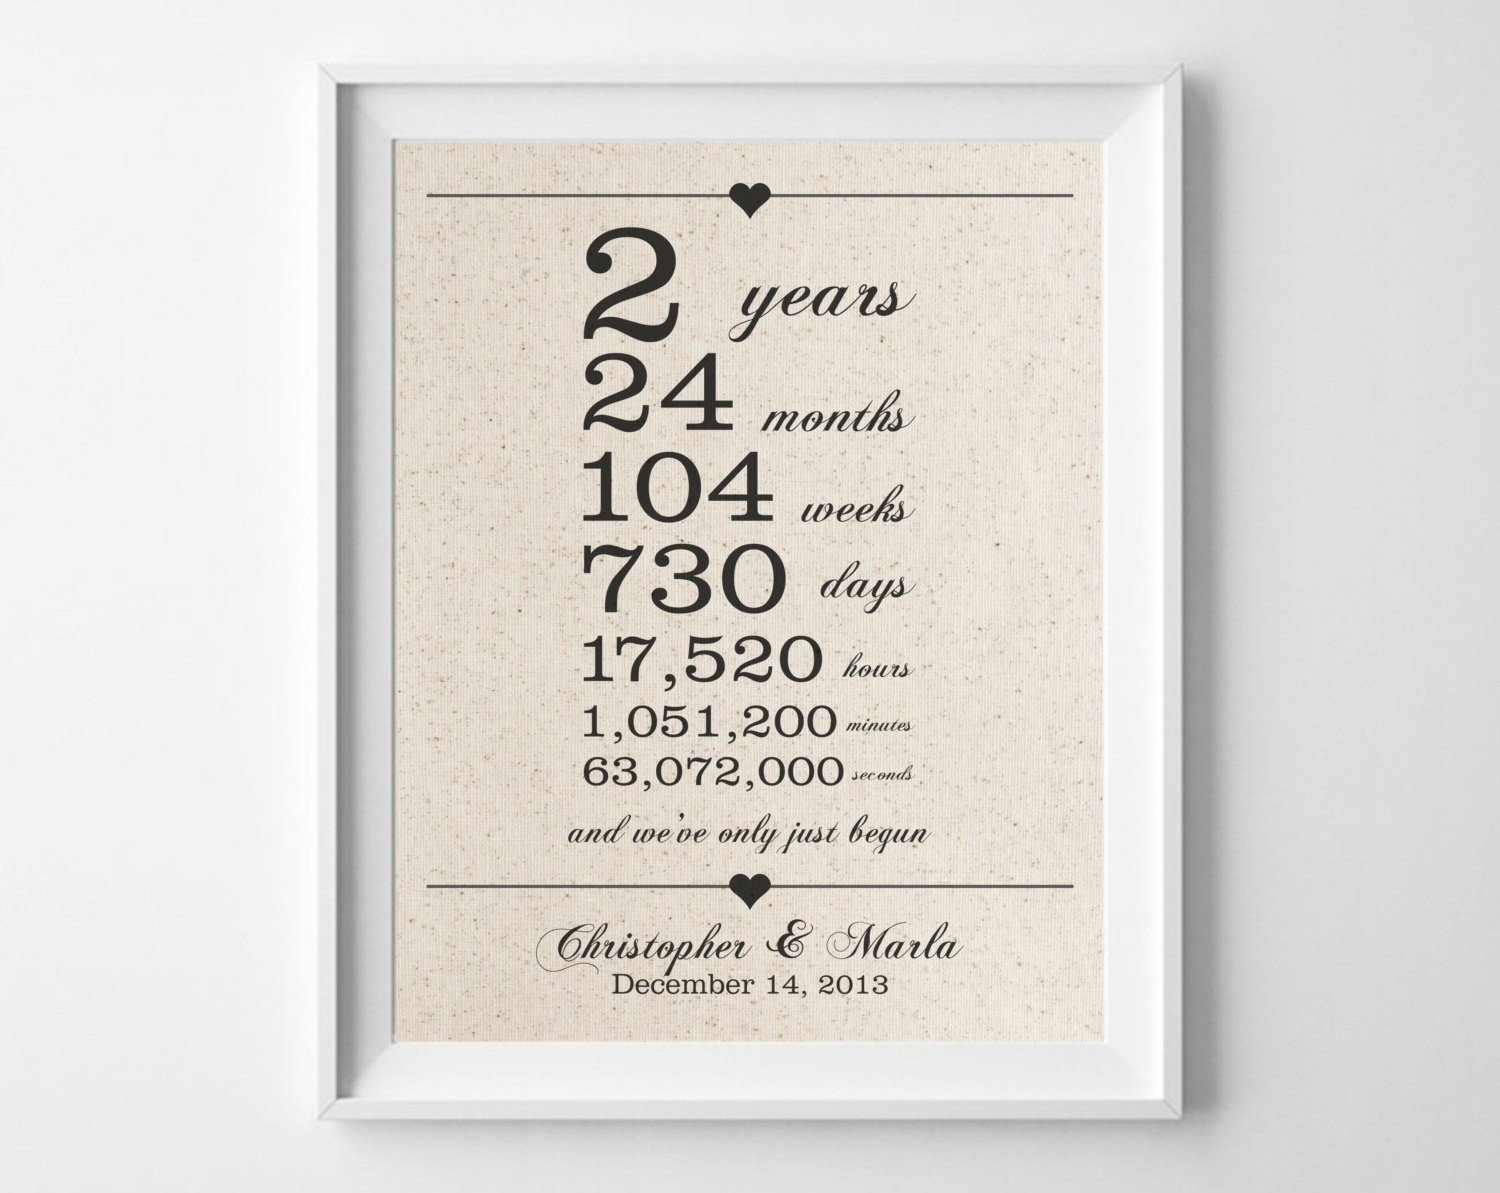 10 Lovely 2 Year Wedding Anniversary Ideas 14 wedding anniversary gift ideas new 2 years to her cotton 1 2021